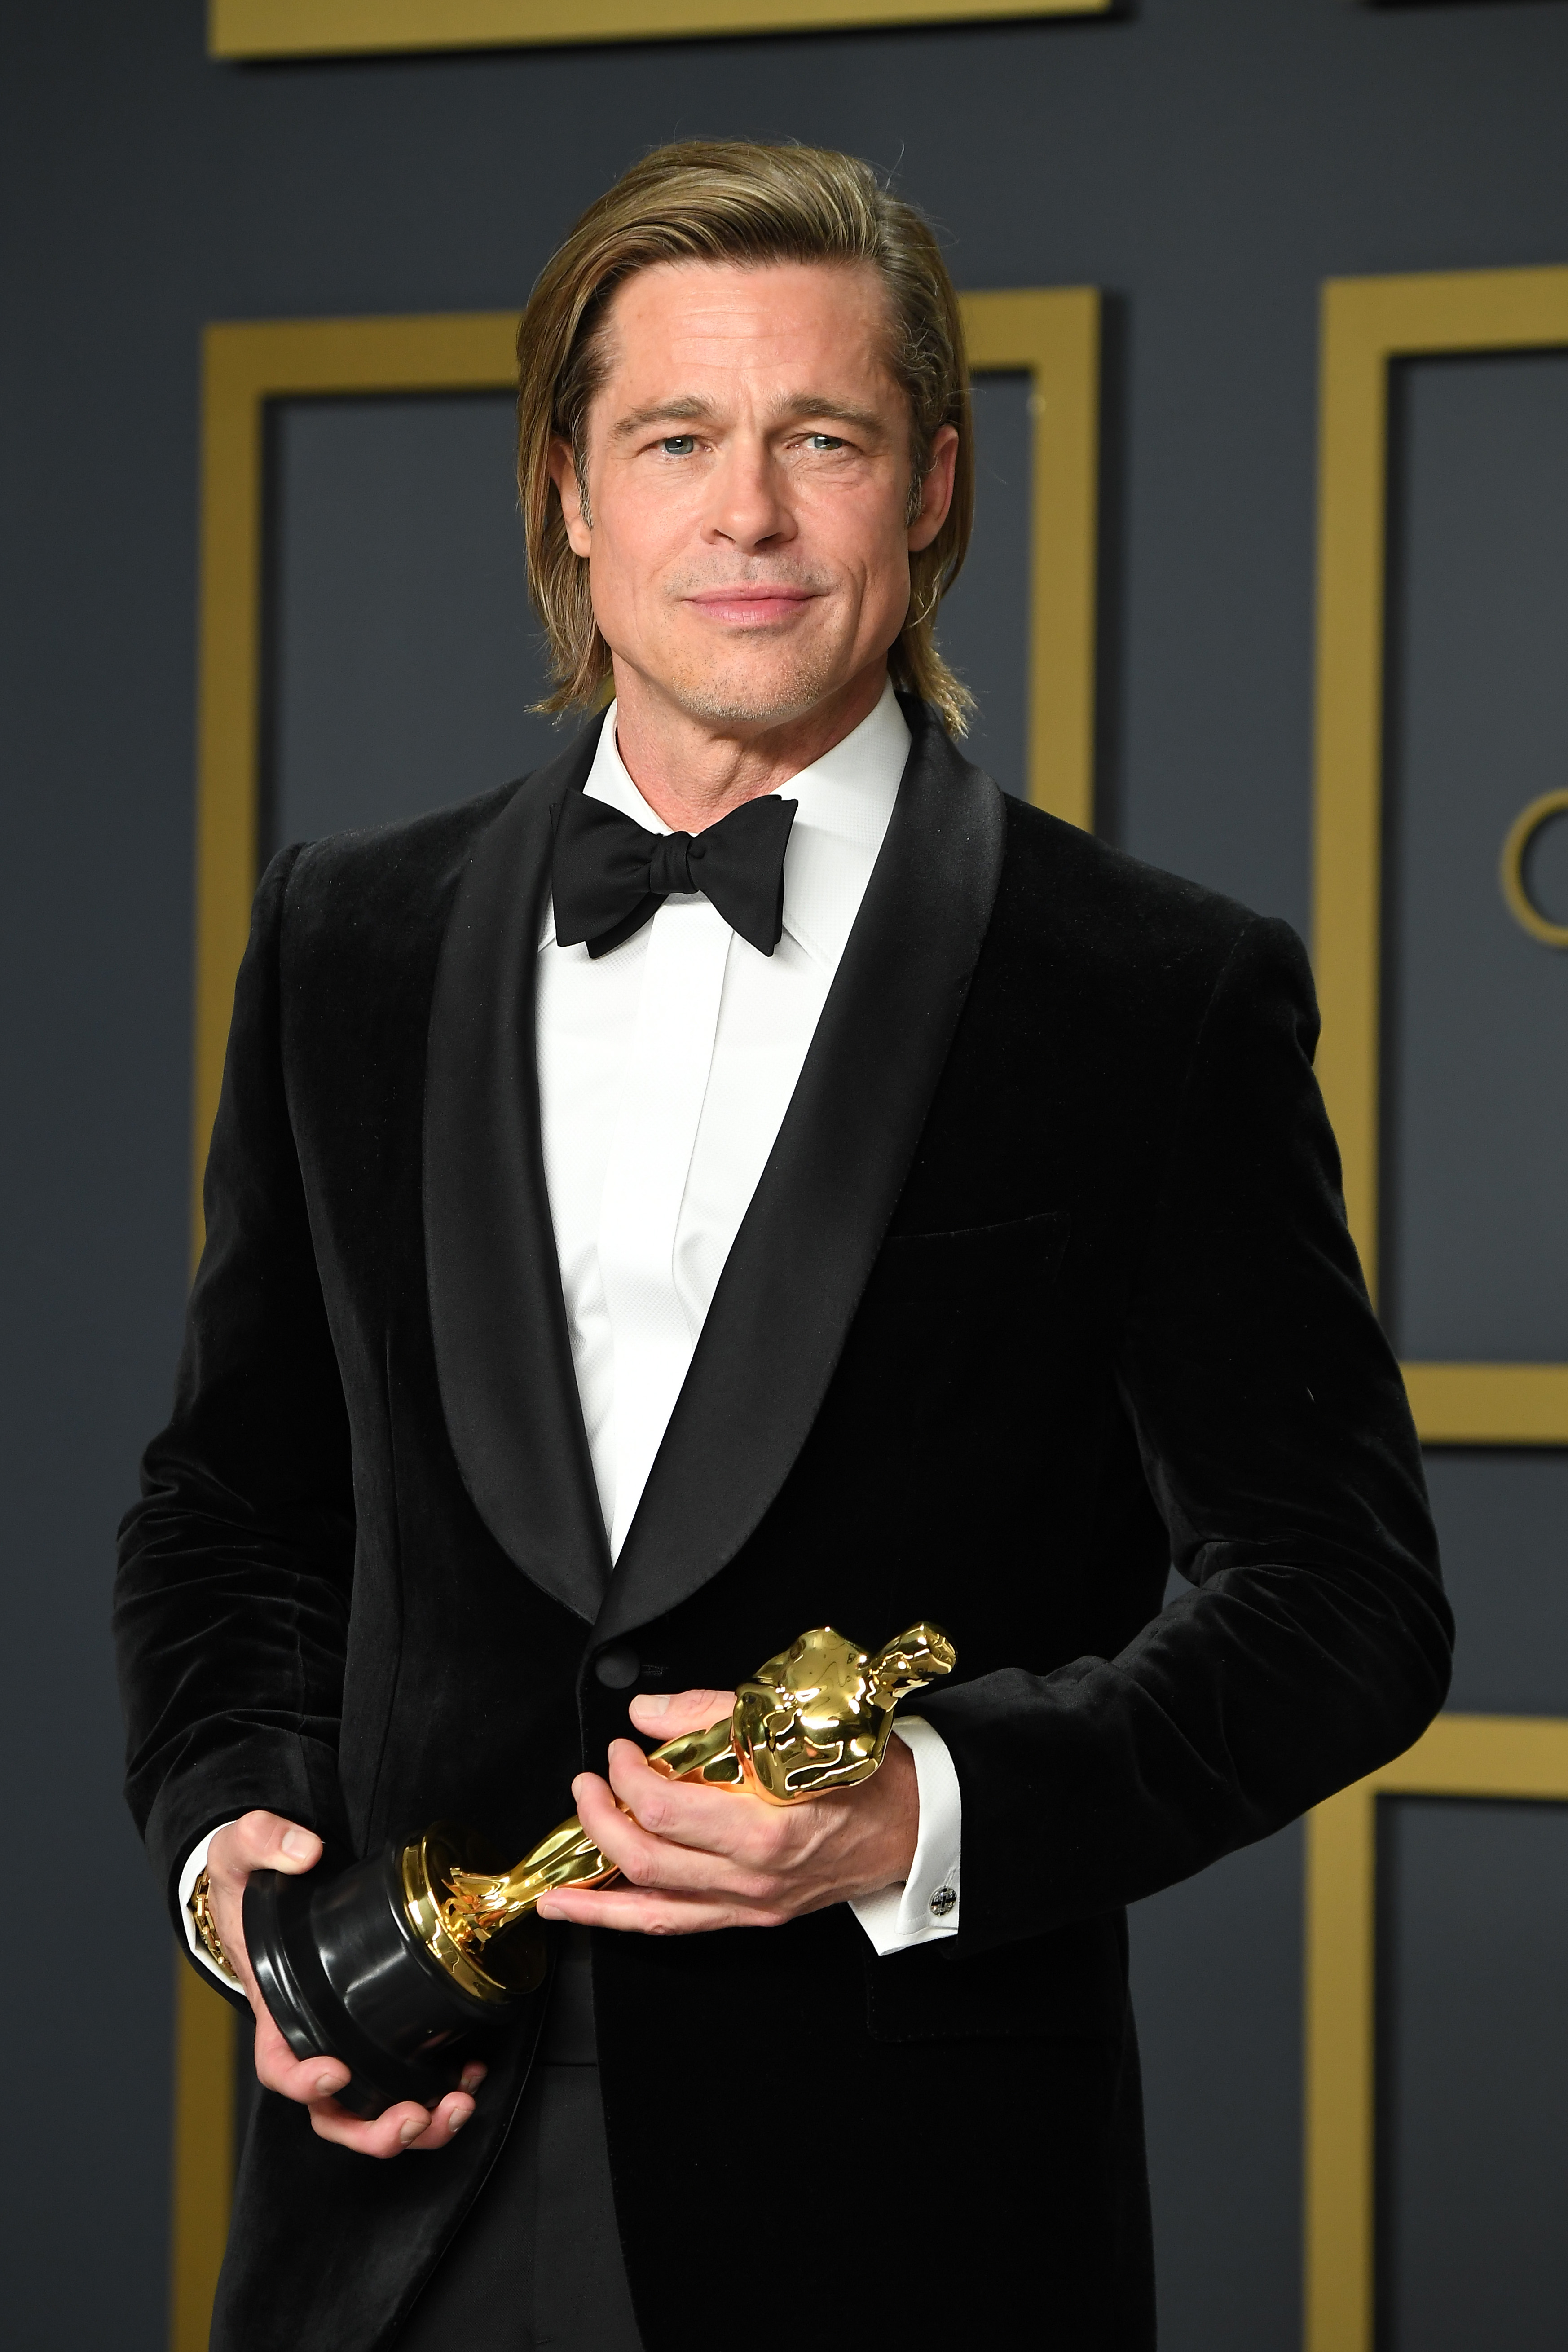 """Brad Pitt winner of Actor in a Supporting Role award for """"Once upon a Time in Hollywood,"""" poses in the press room during the 92nd Annual Academy Awards at Hollywood and Highland on February 09, 2020 in Hollywood, California. (Photo by Steve Granitz/WireImage )"""